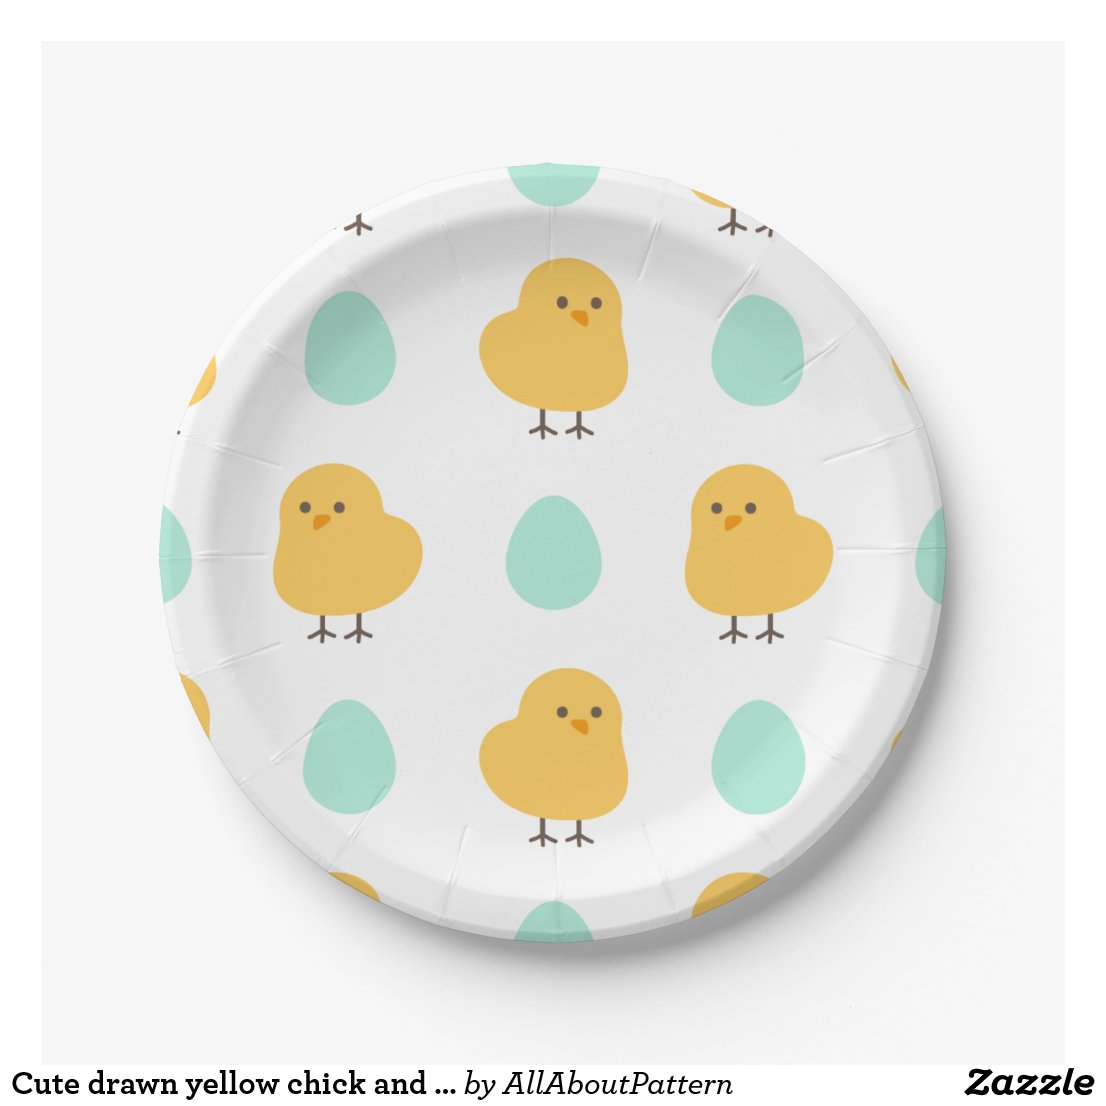 Cute drawn yellow chick and egg easter pattern paper plate